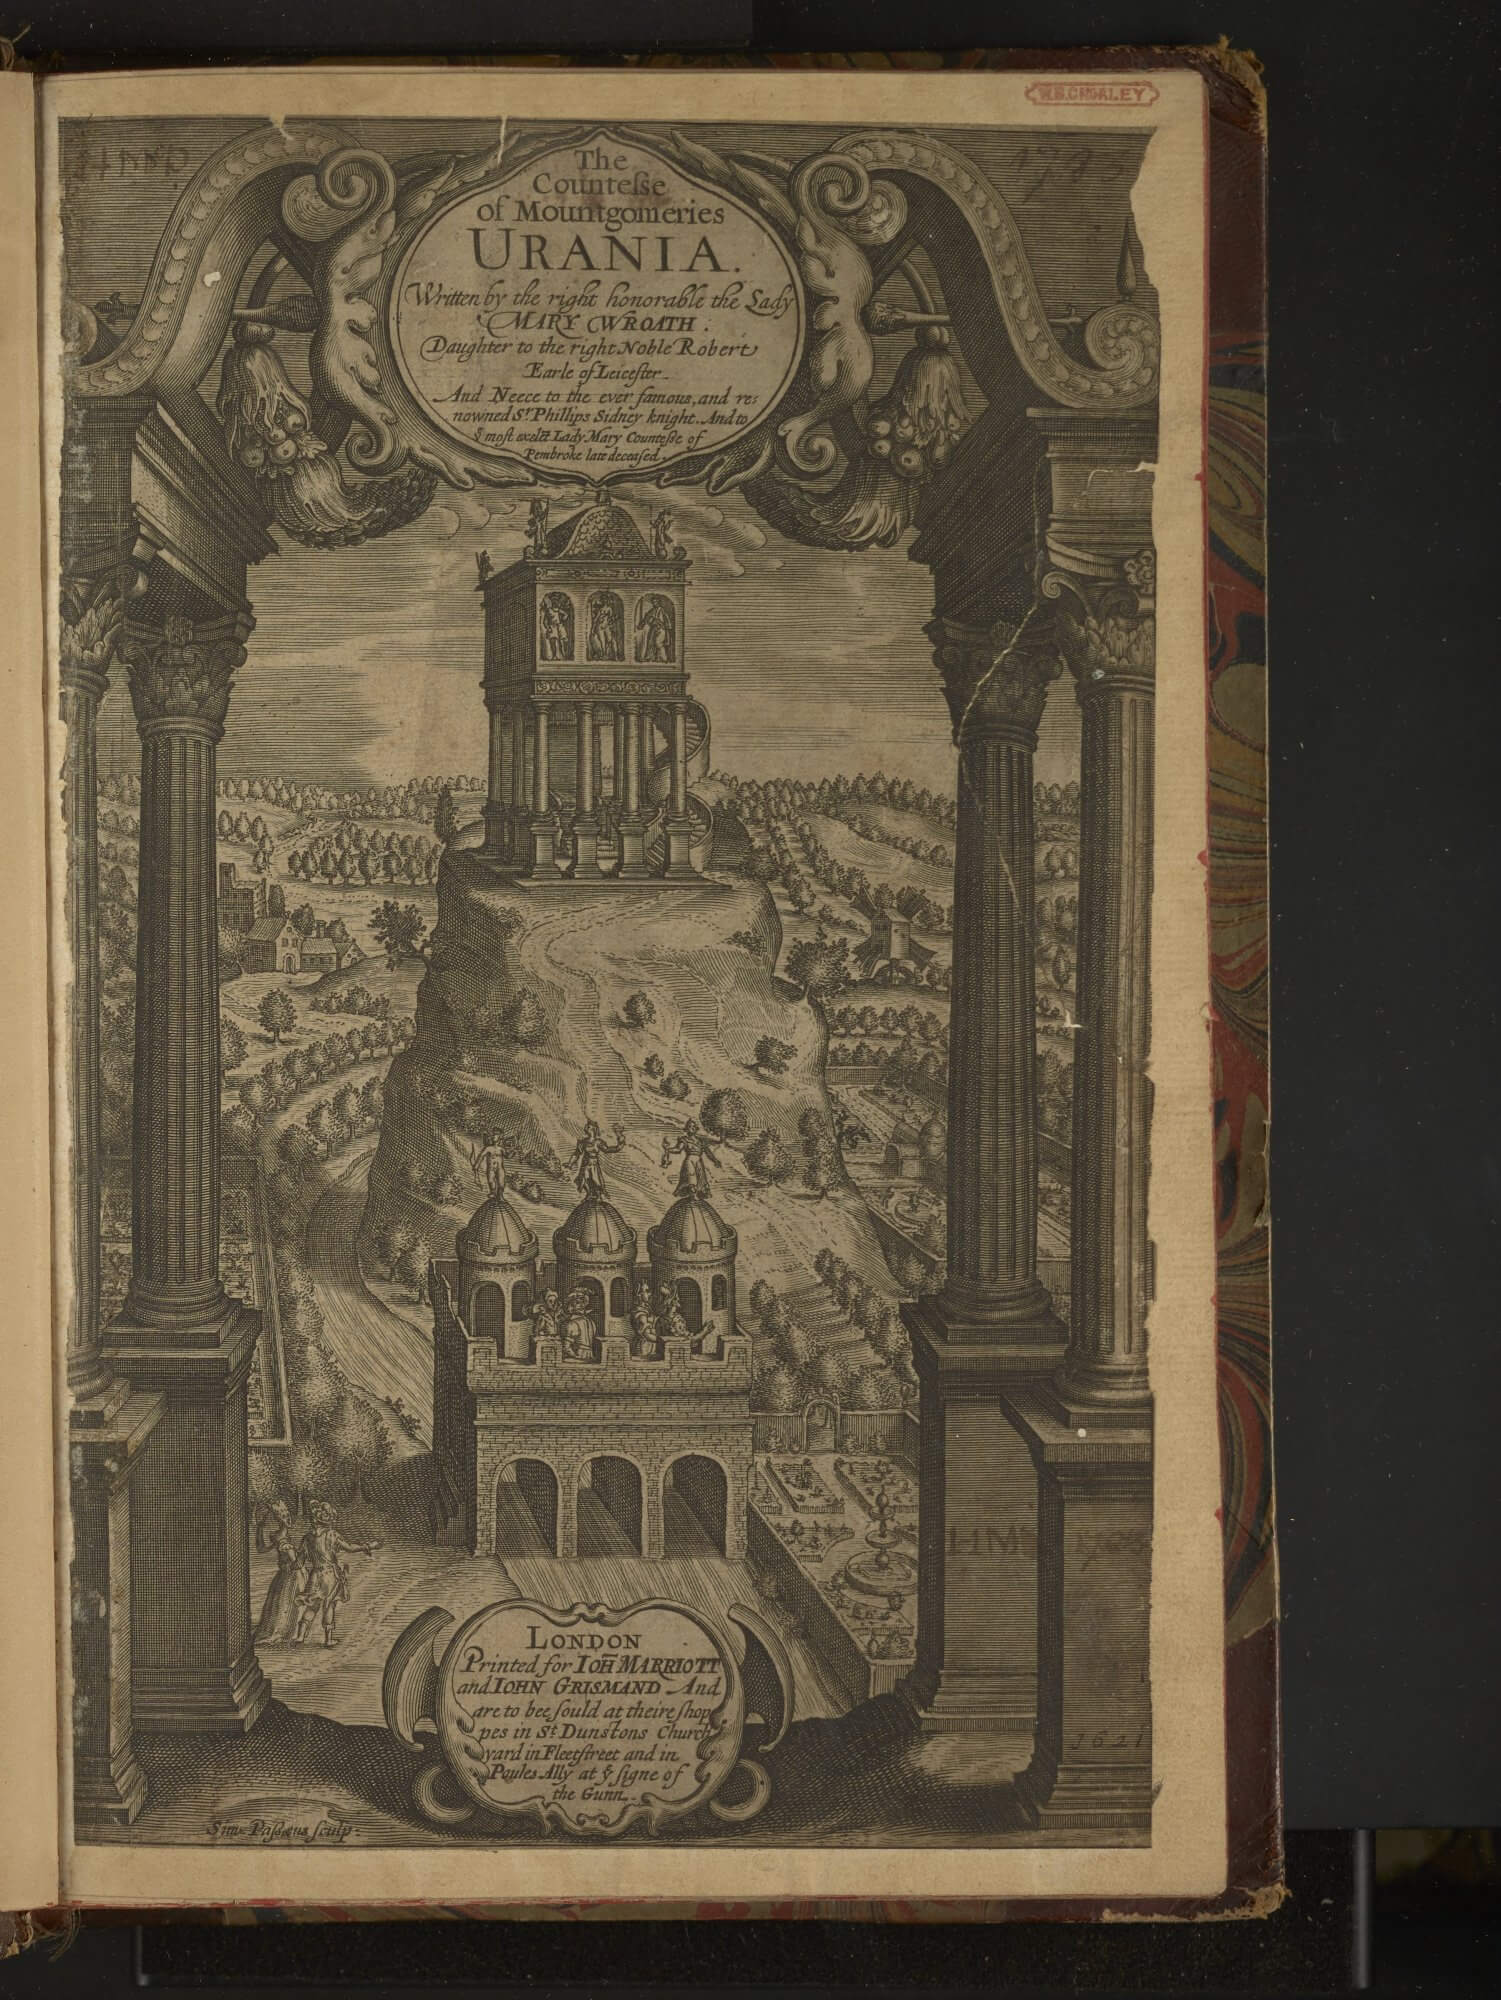 """This title page for Wroth's prose romance is entirely engraved, from the illustration to the title above and the imprint statement below. At the very bottom of the page, on the left, is the engraver's name, """"Sim. Passaeus, sculp:"""""""